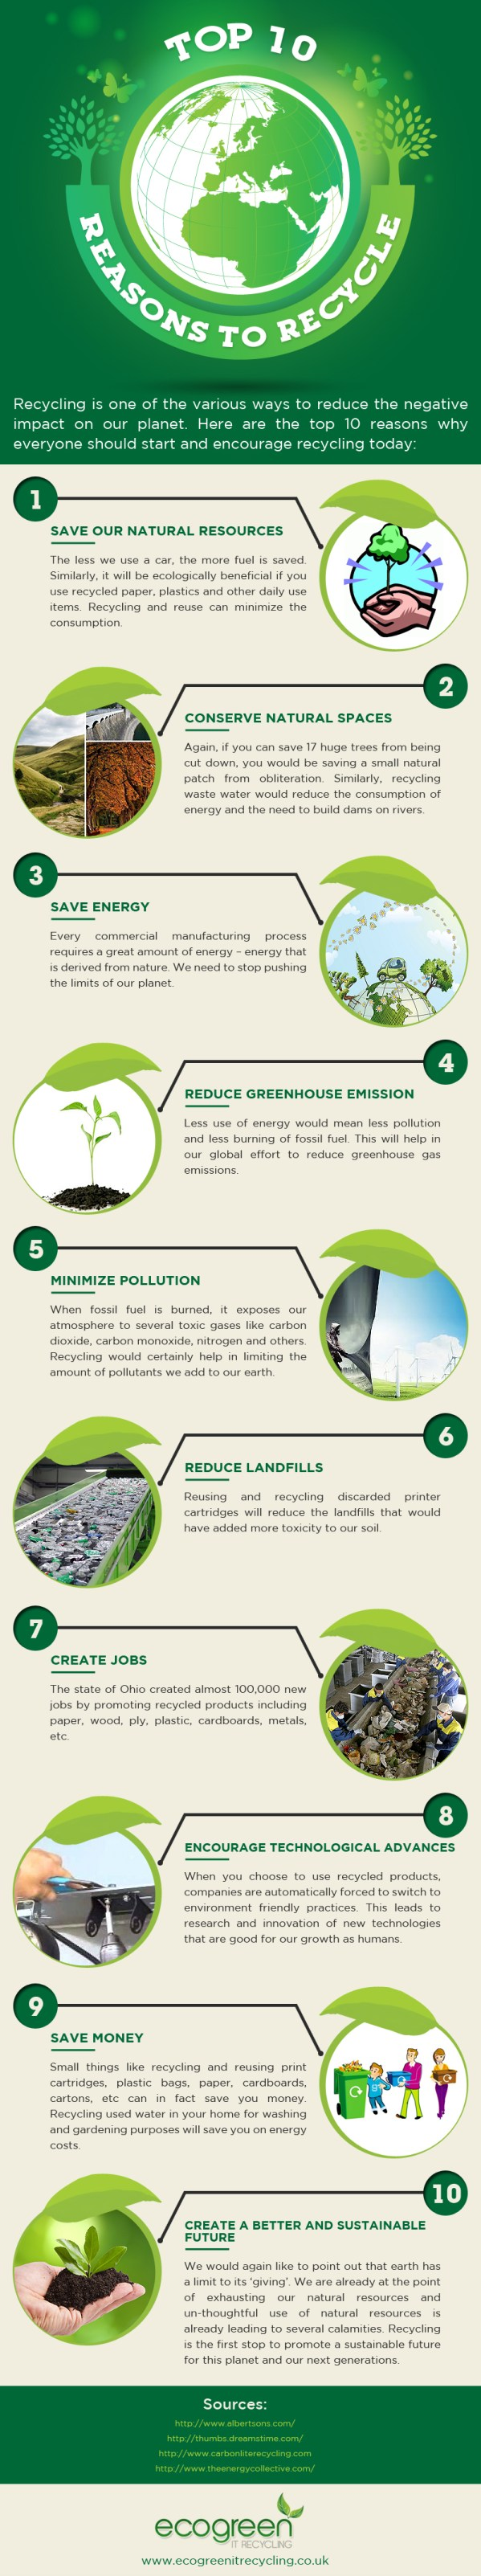 Top 10 Reasons to Recycle